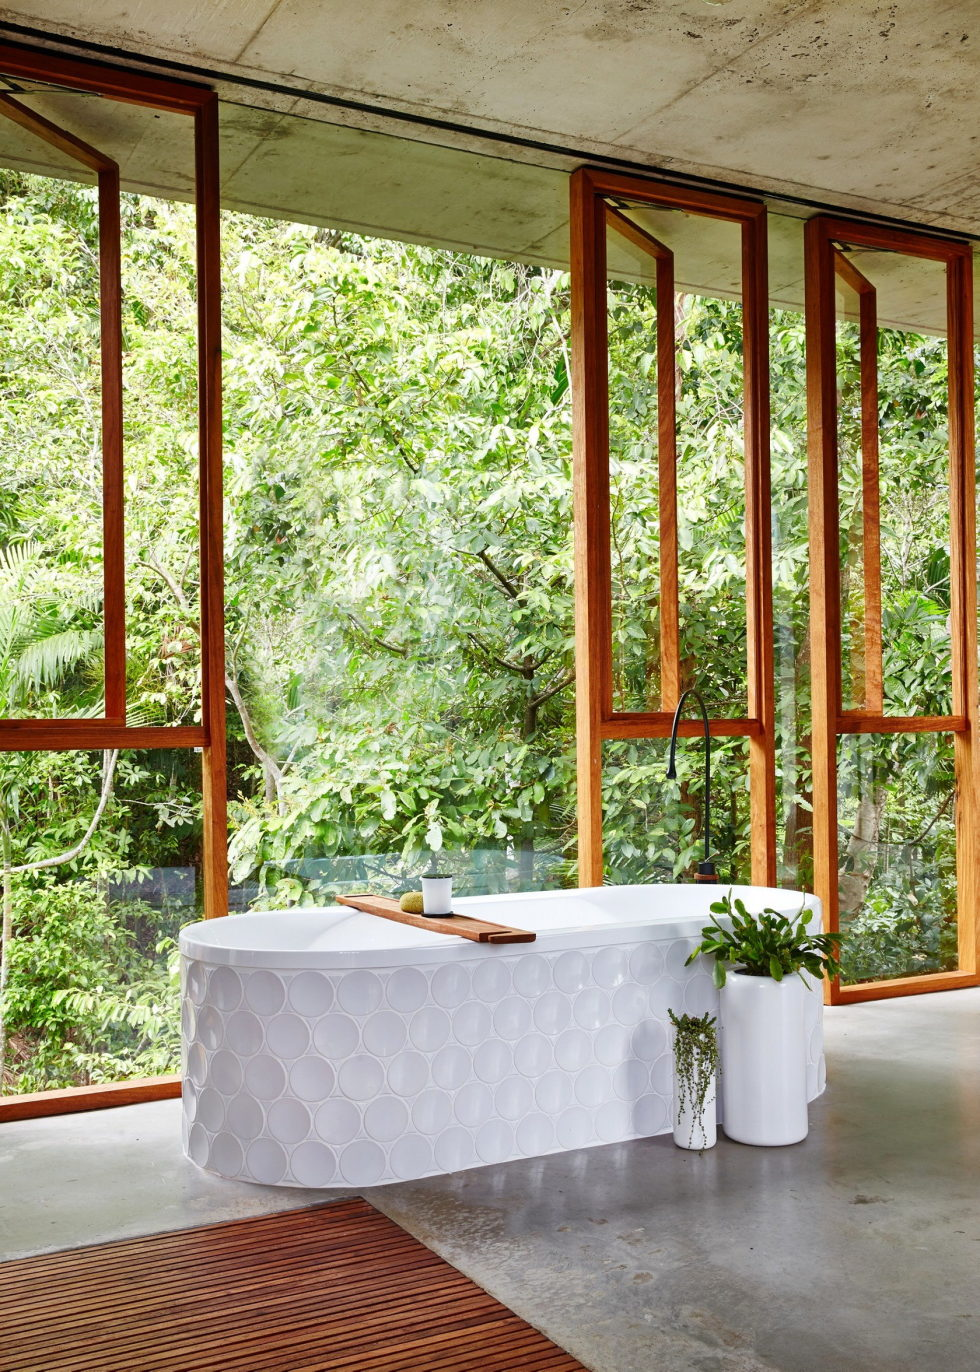 The glass house Planchonella in the tropical forest from Jesse Bennett Architect 23